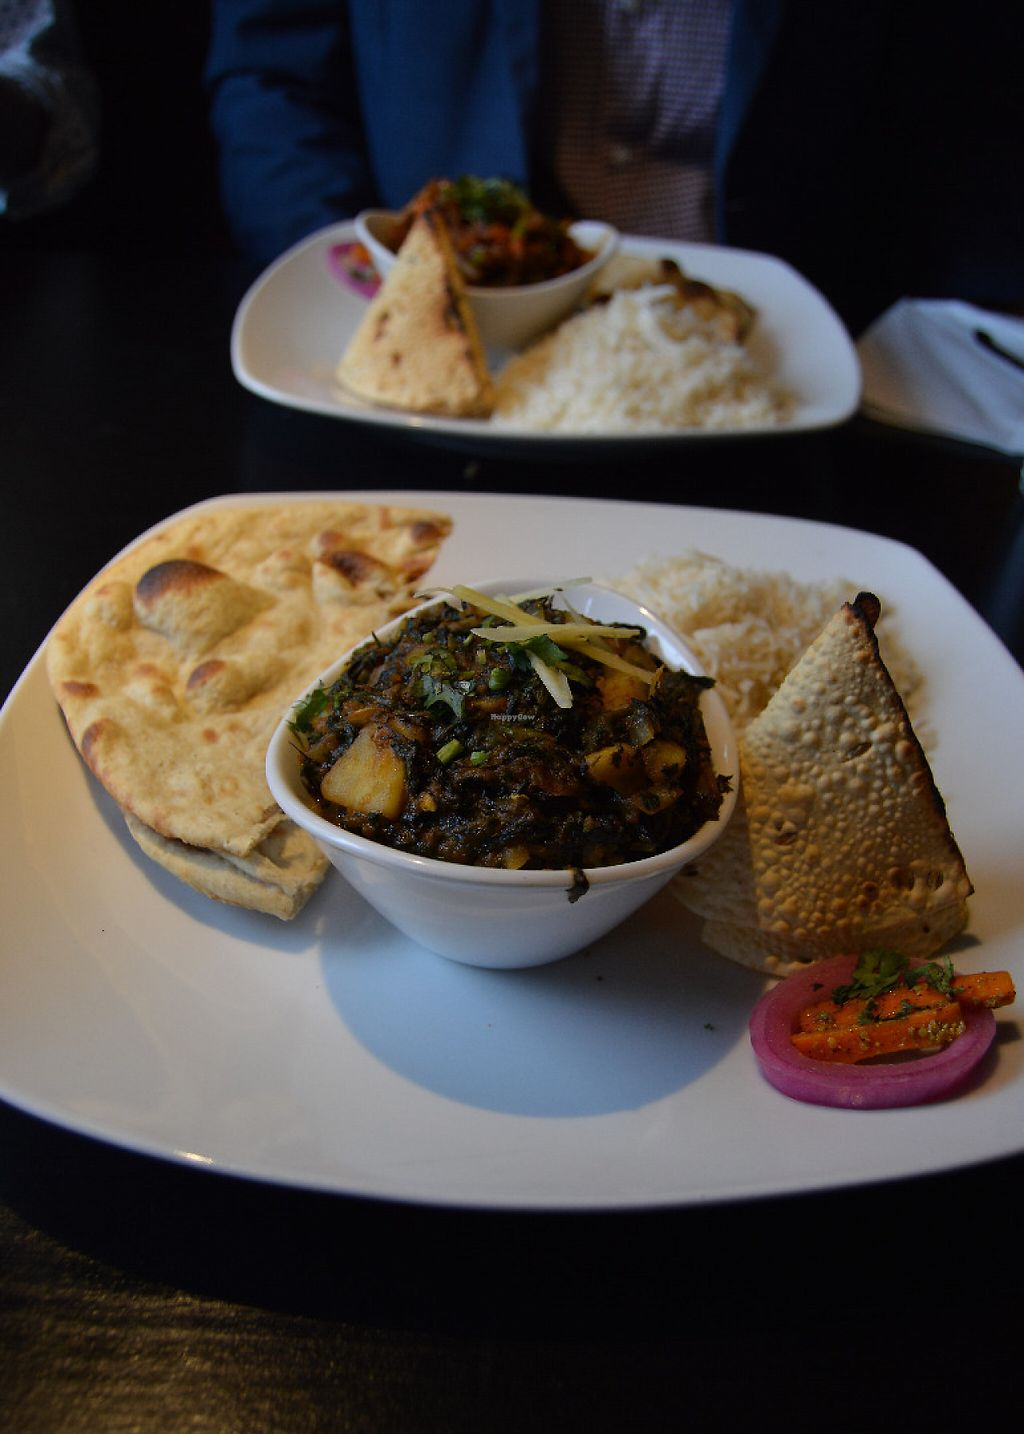 """Photo of Moksha Indian Bistro  by <a href=""""/members/profile/Vegan%20GiGi"""">Vegan GiGi</a> <br/>Methi aloo (fenugreek leaves and potato in nutty curry), and mixed vegetable jhal frazi (in the background). Both served with roti, rice, and a papadum cone. SO TASTY <br/> May 7, 2017  - <a href='/contact/abuse/image/58824/256454'>Report</a>"""